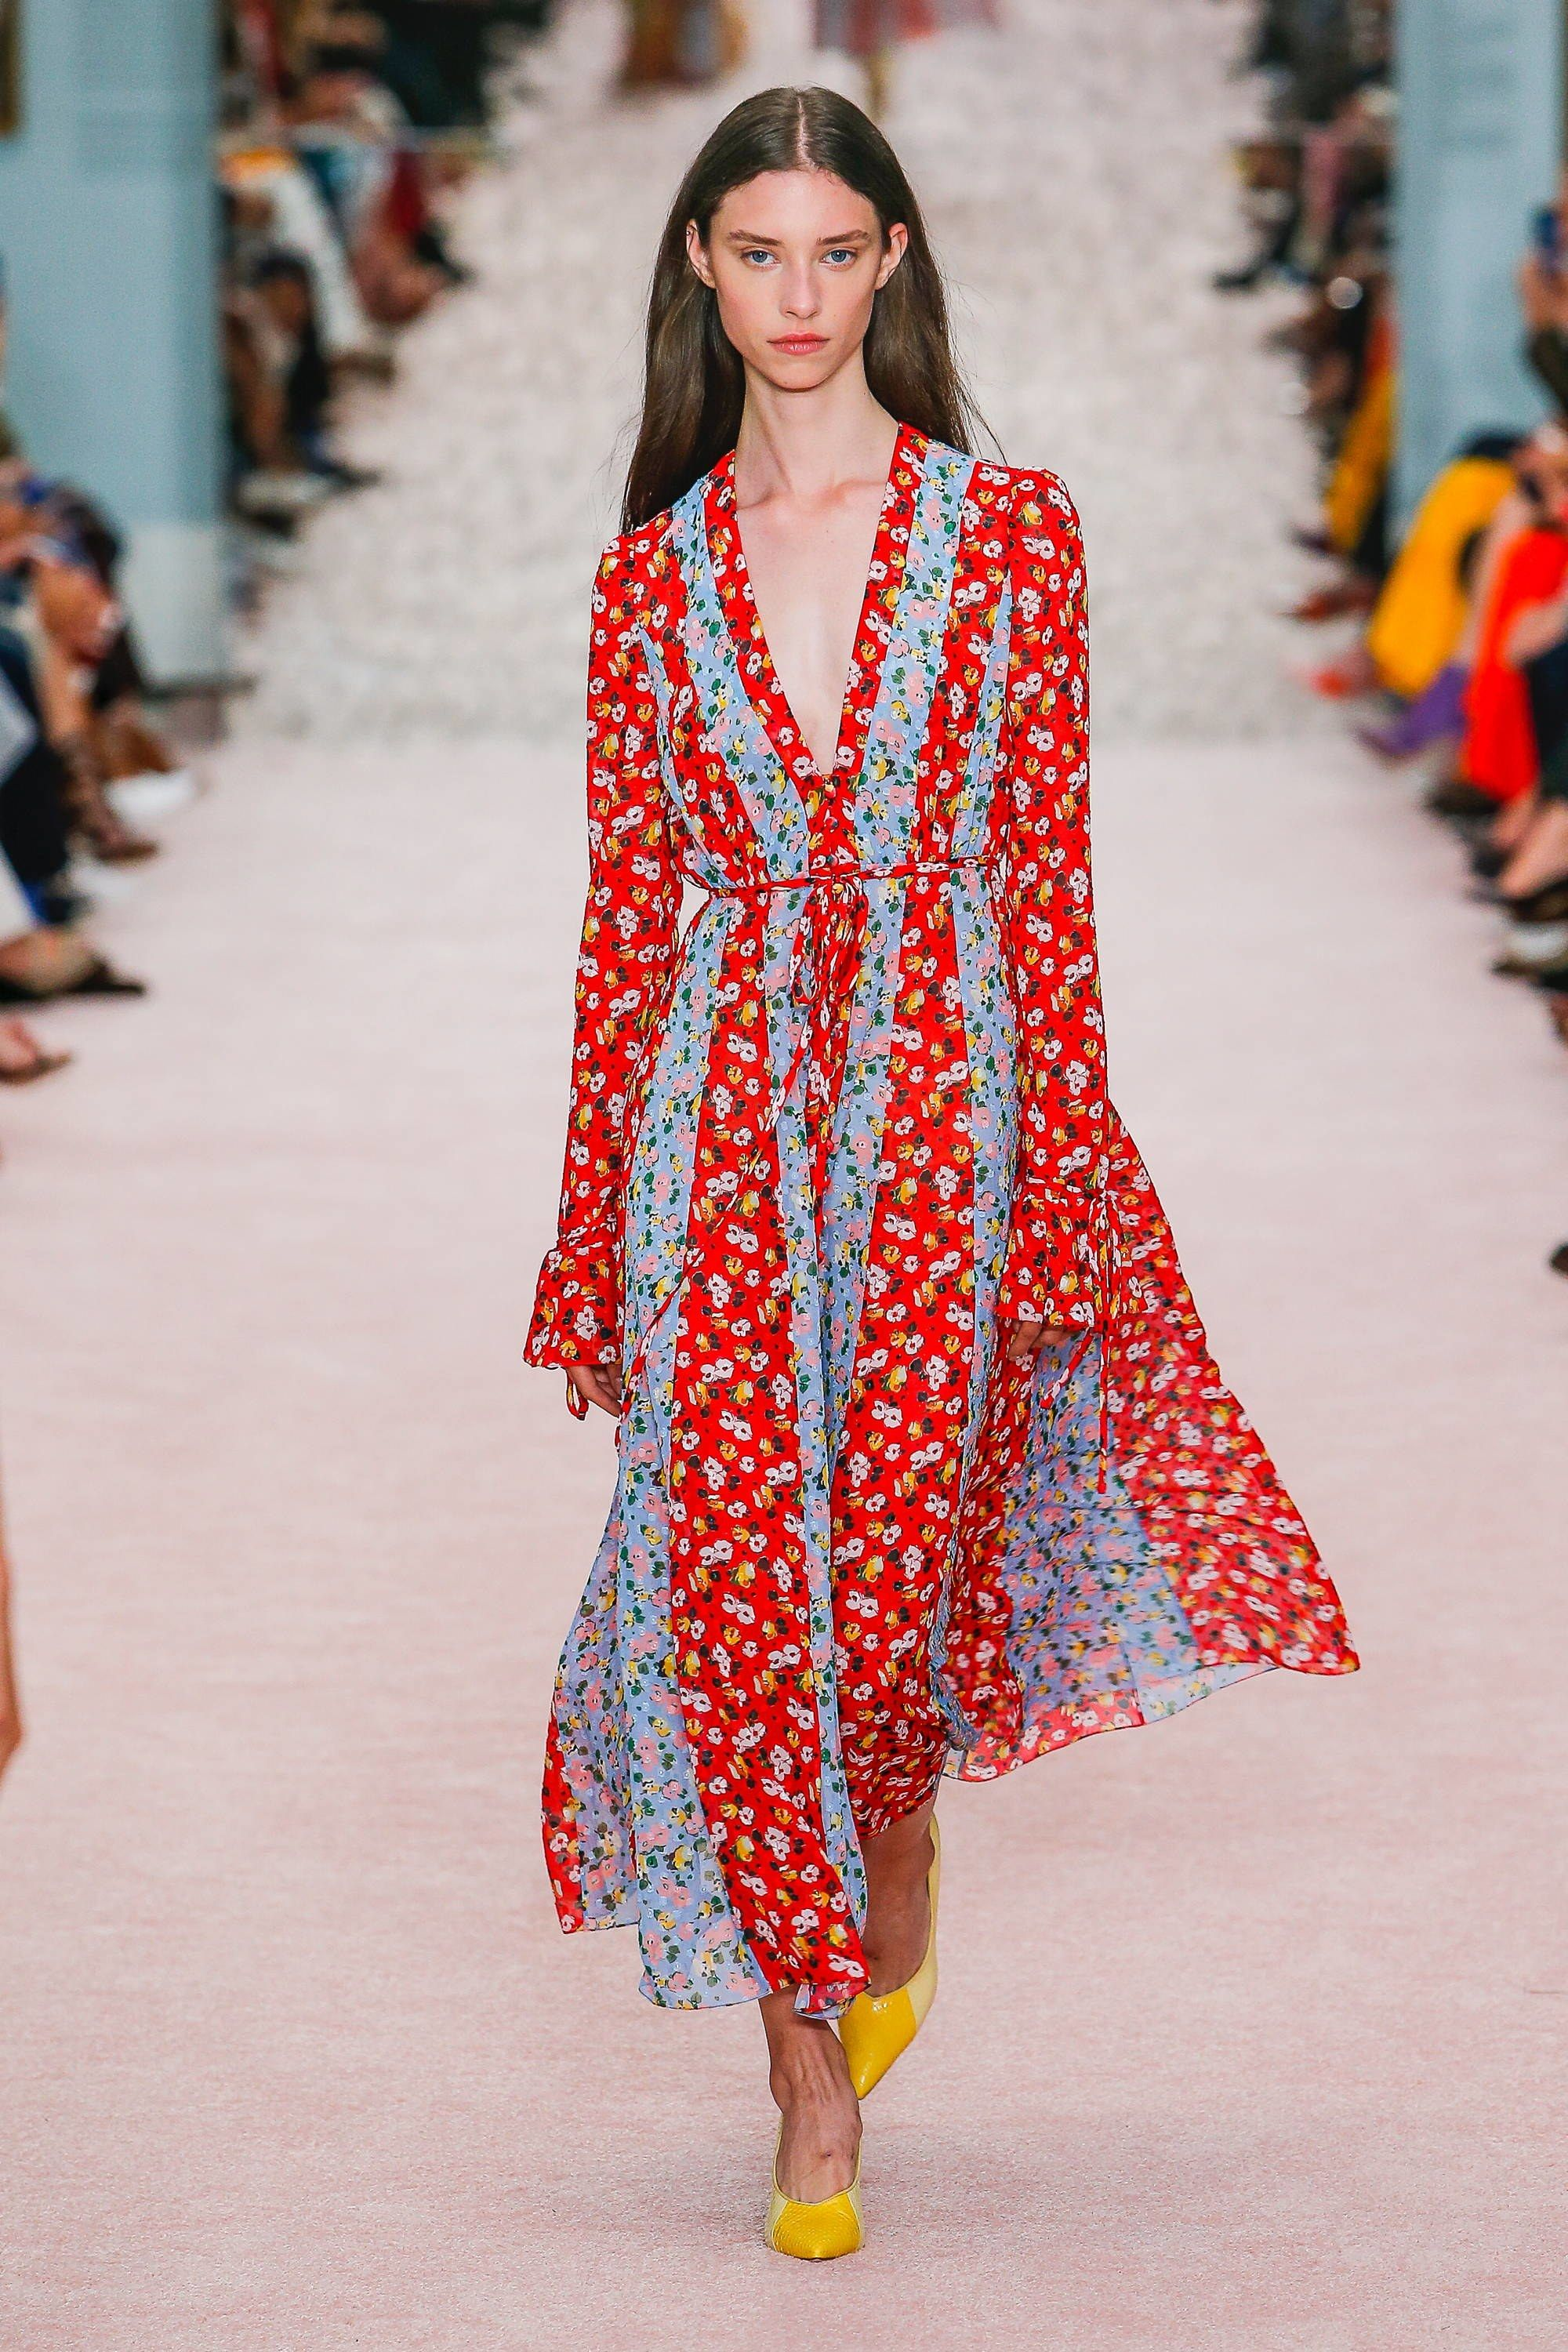 ad2f14f459897a Spring Summer 2019 Fashion Week Coverage  Top 10 Spring Summer 2019 Trends